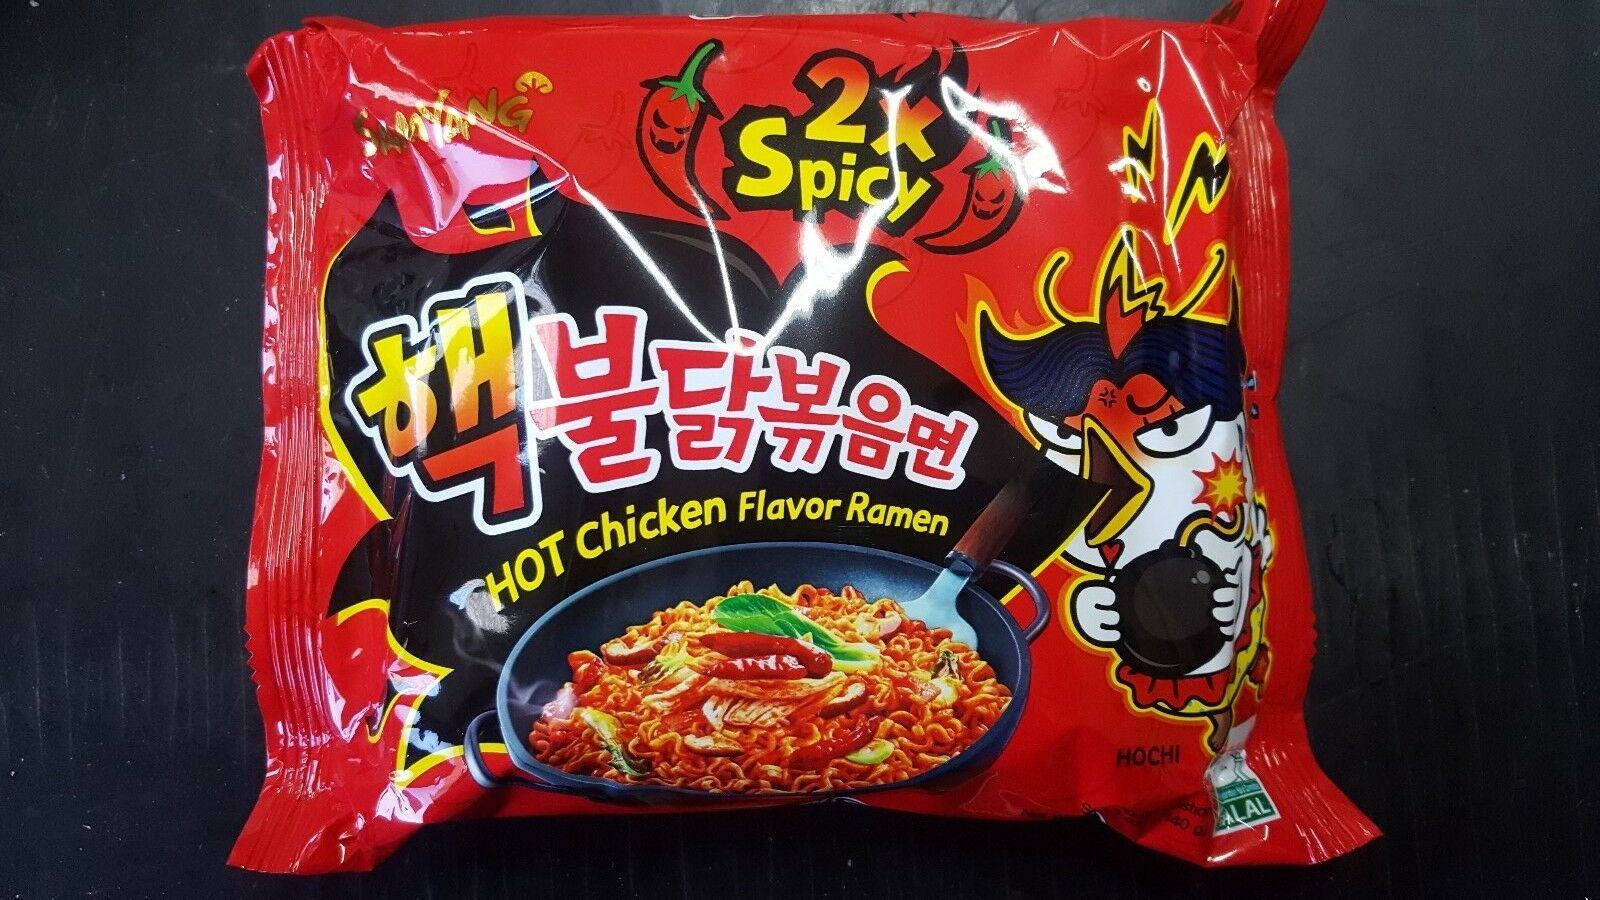 1 Pack Limited Edition Samyang 2x Spicy Hot Chicken Flavor Ramen Nuclear Of 4free Shipping See More